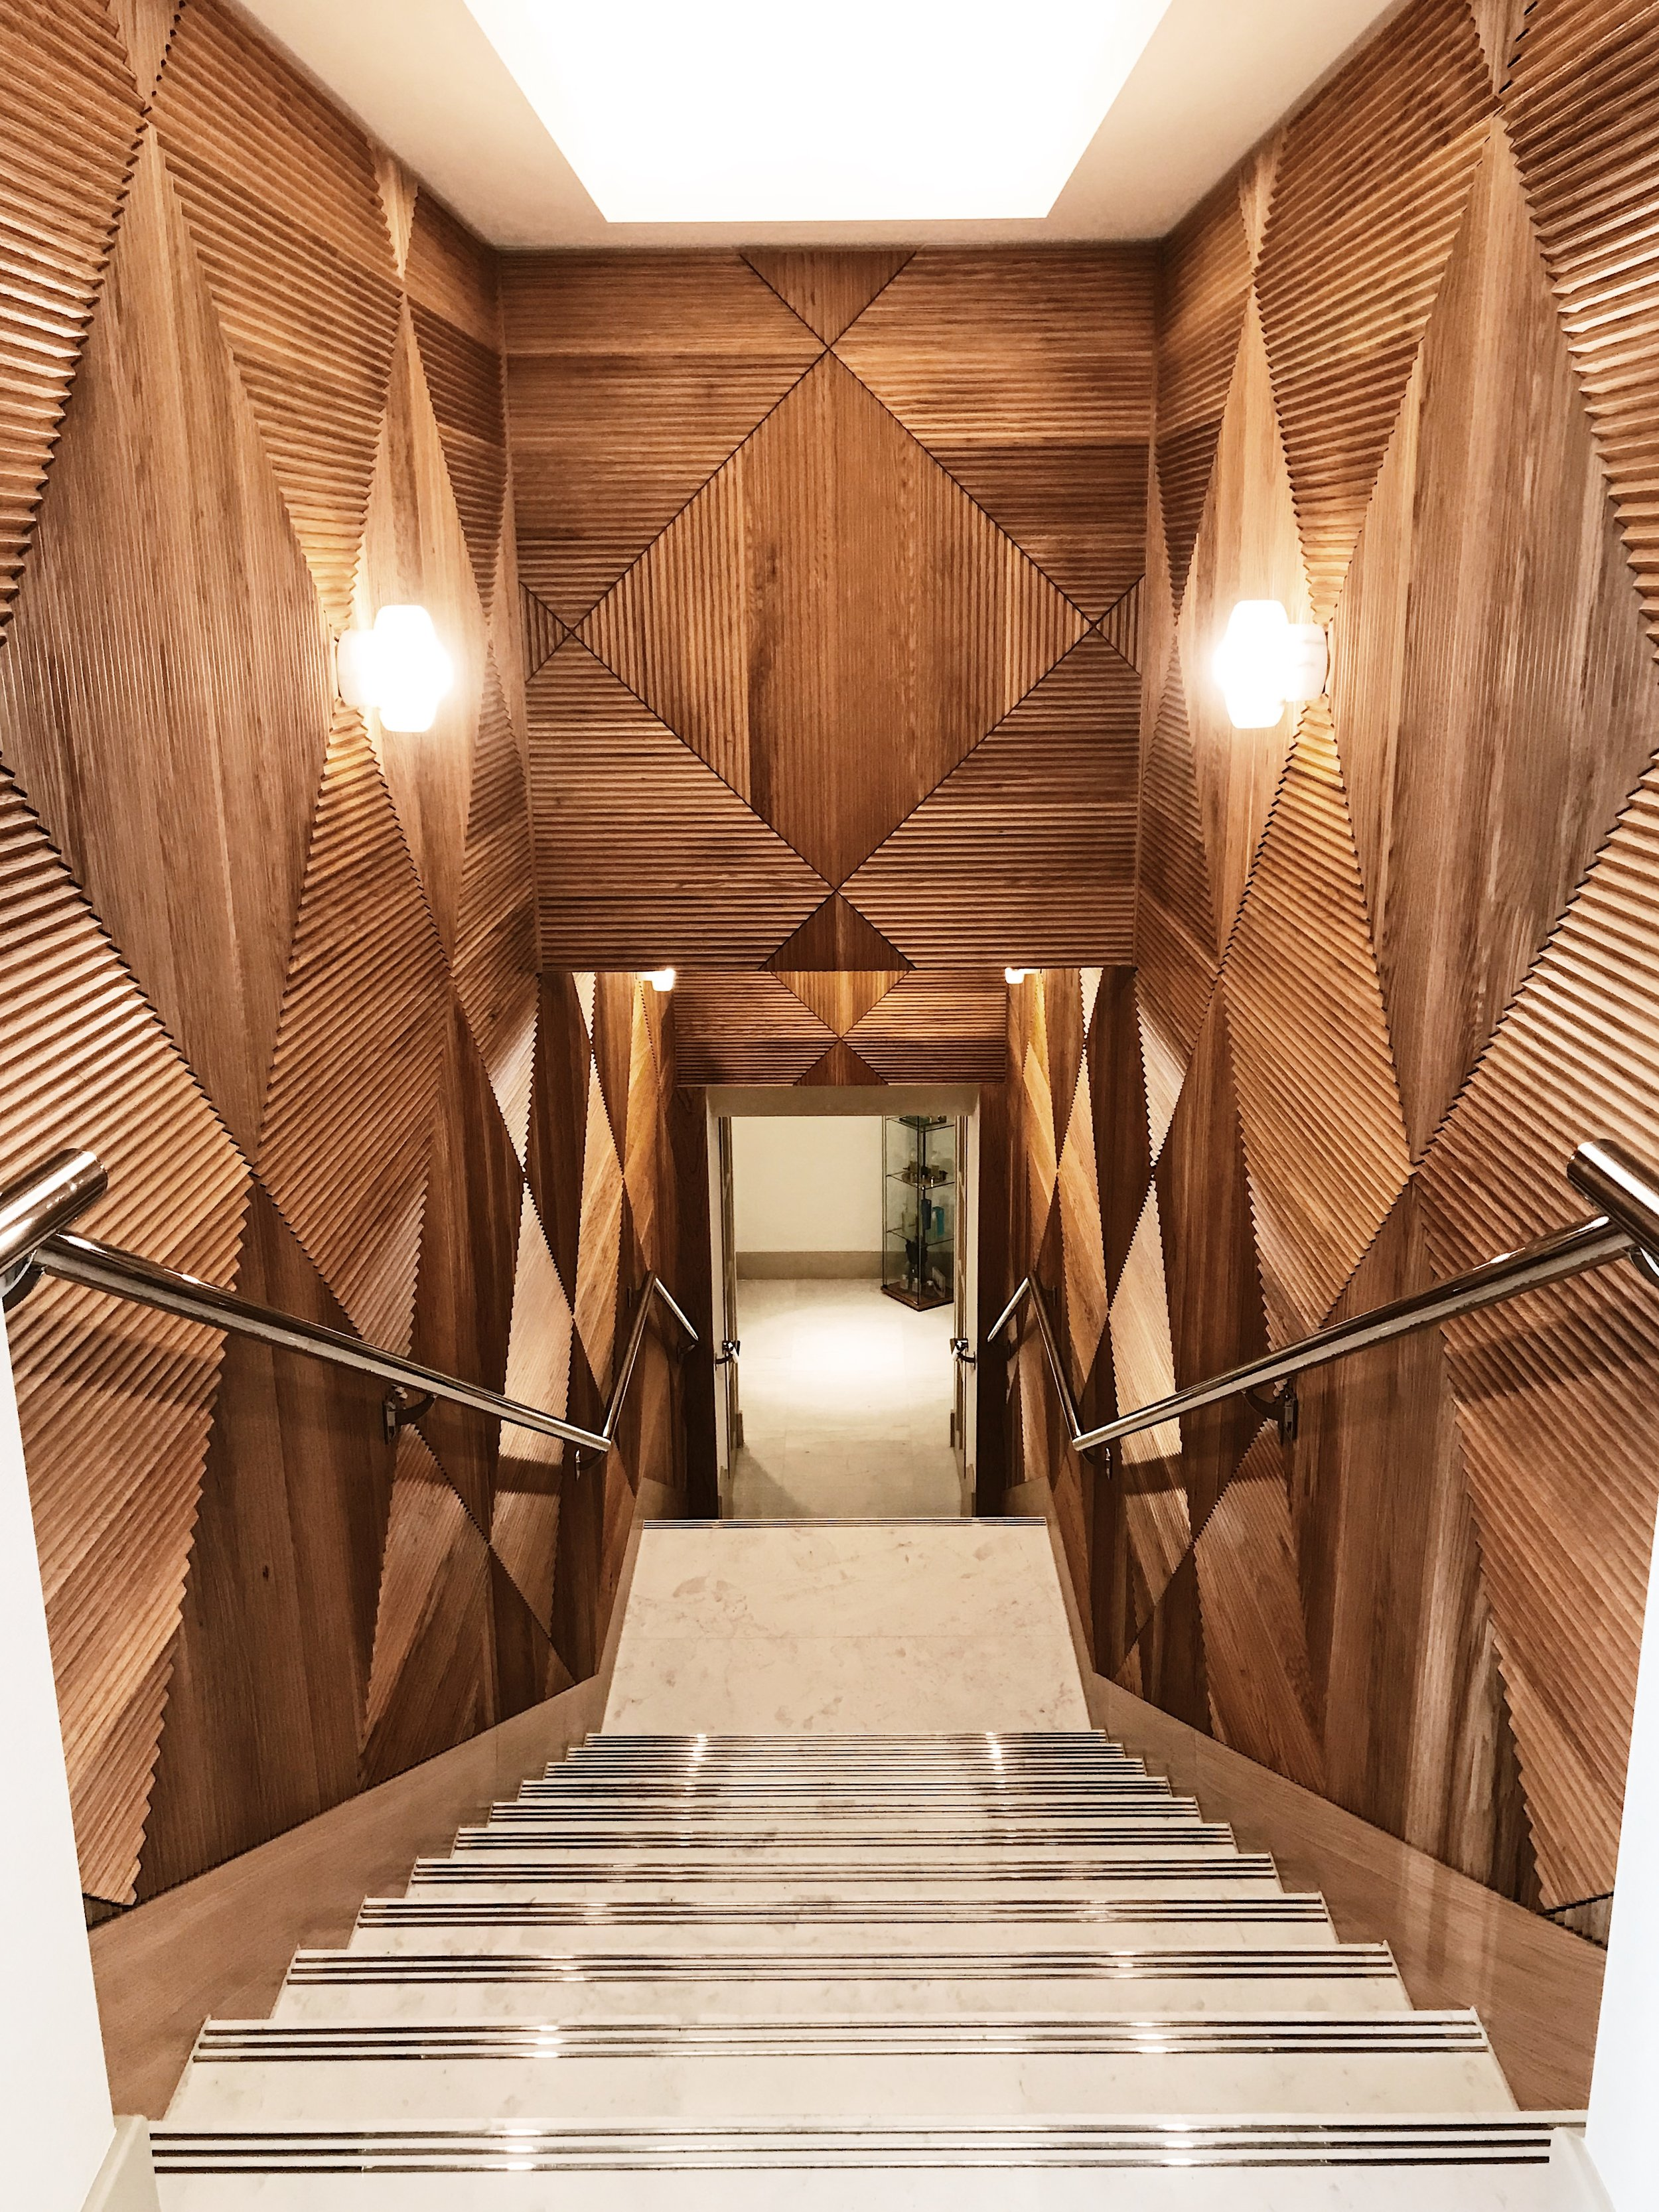 The wooden entrance to the Savoy Beauty and Fitness